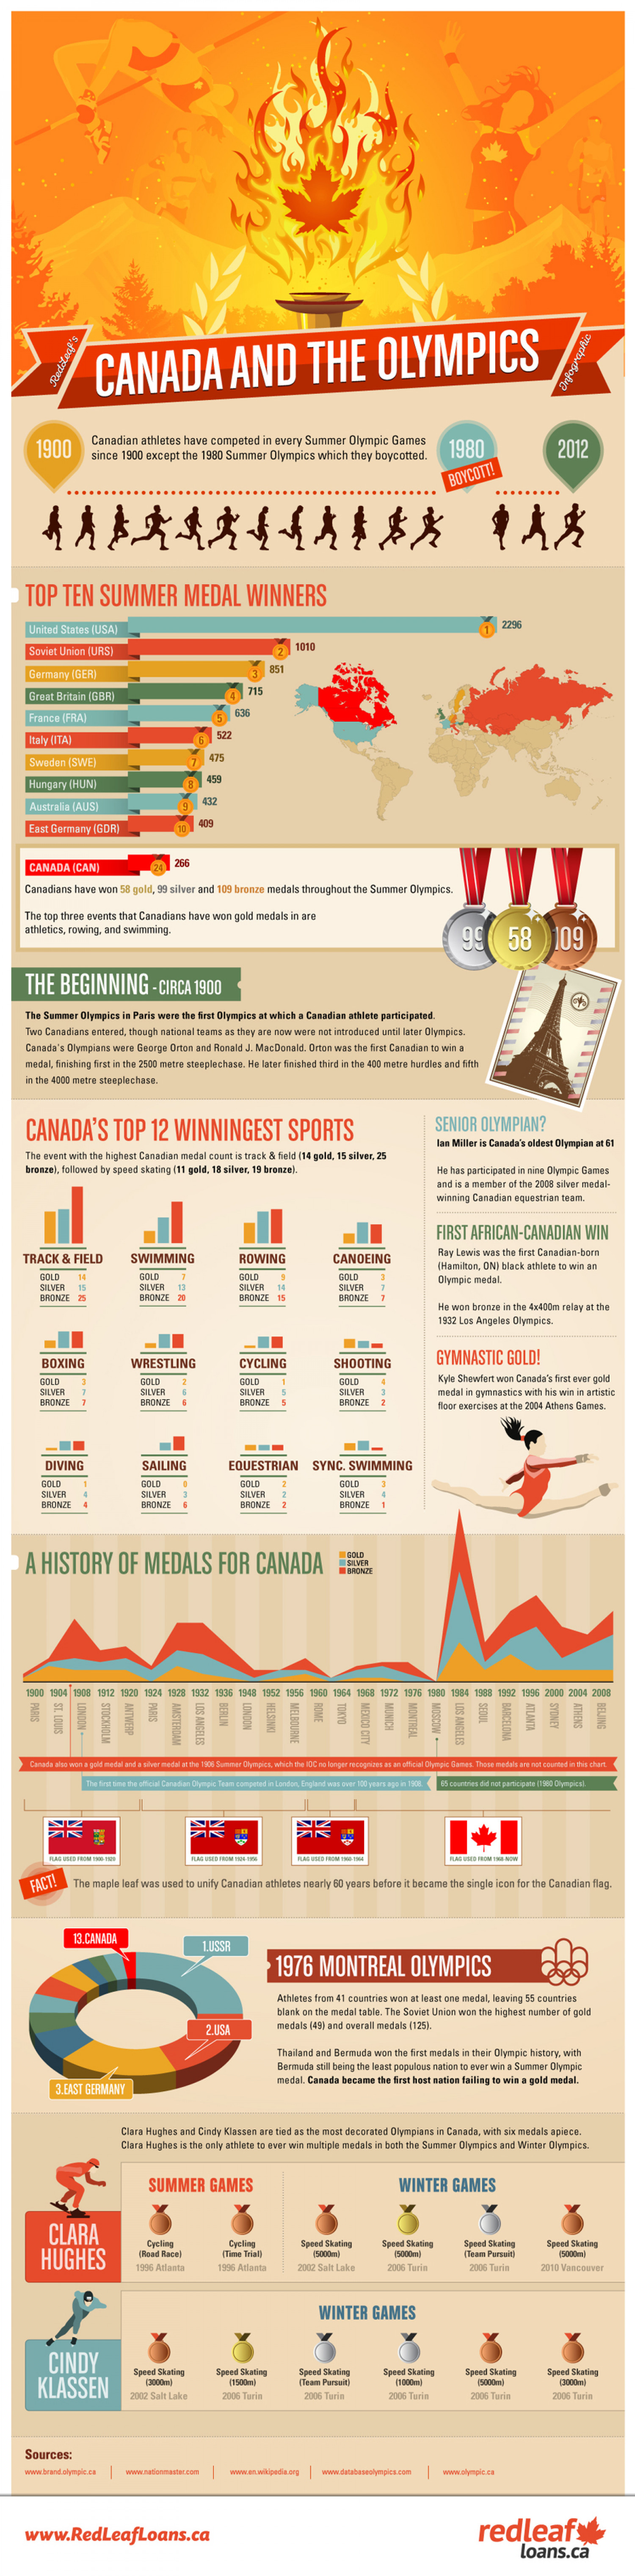 Canada and the Olympics Infographic